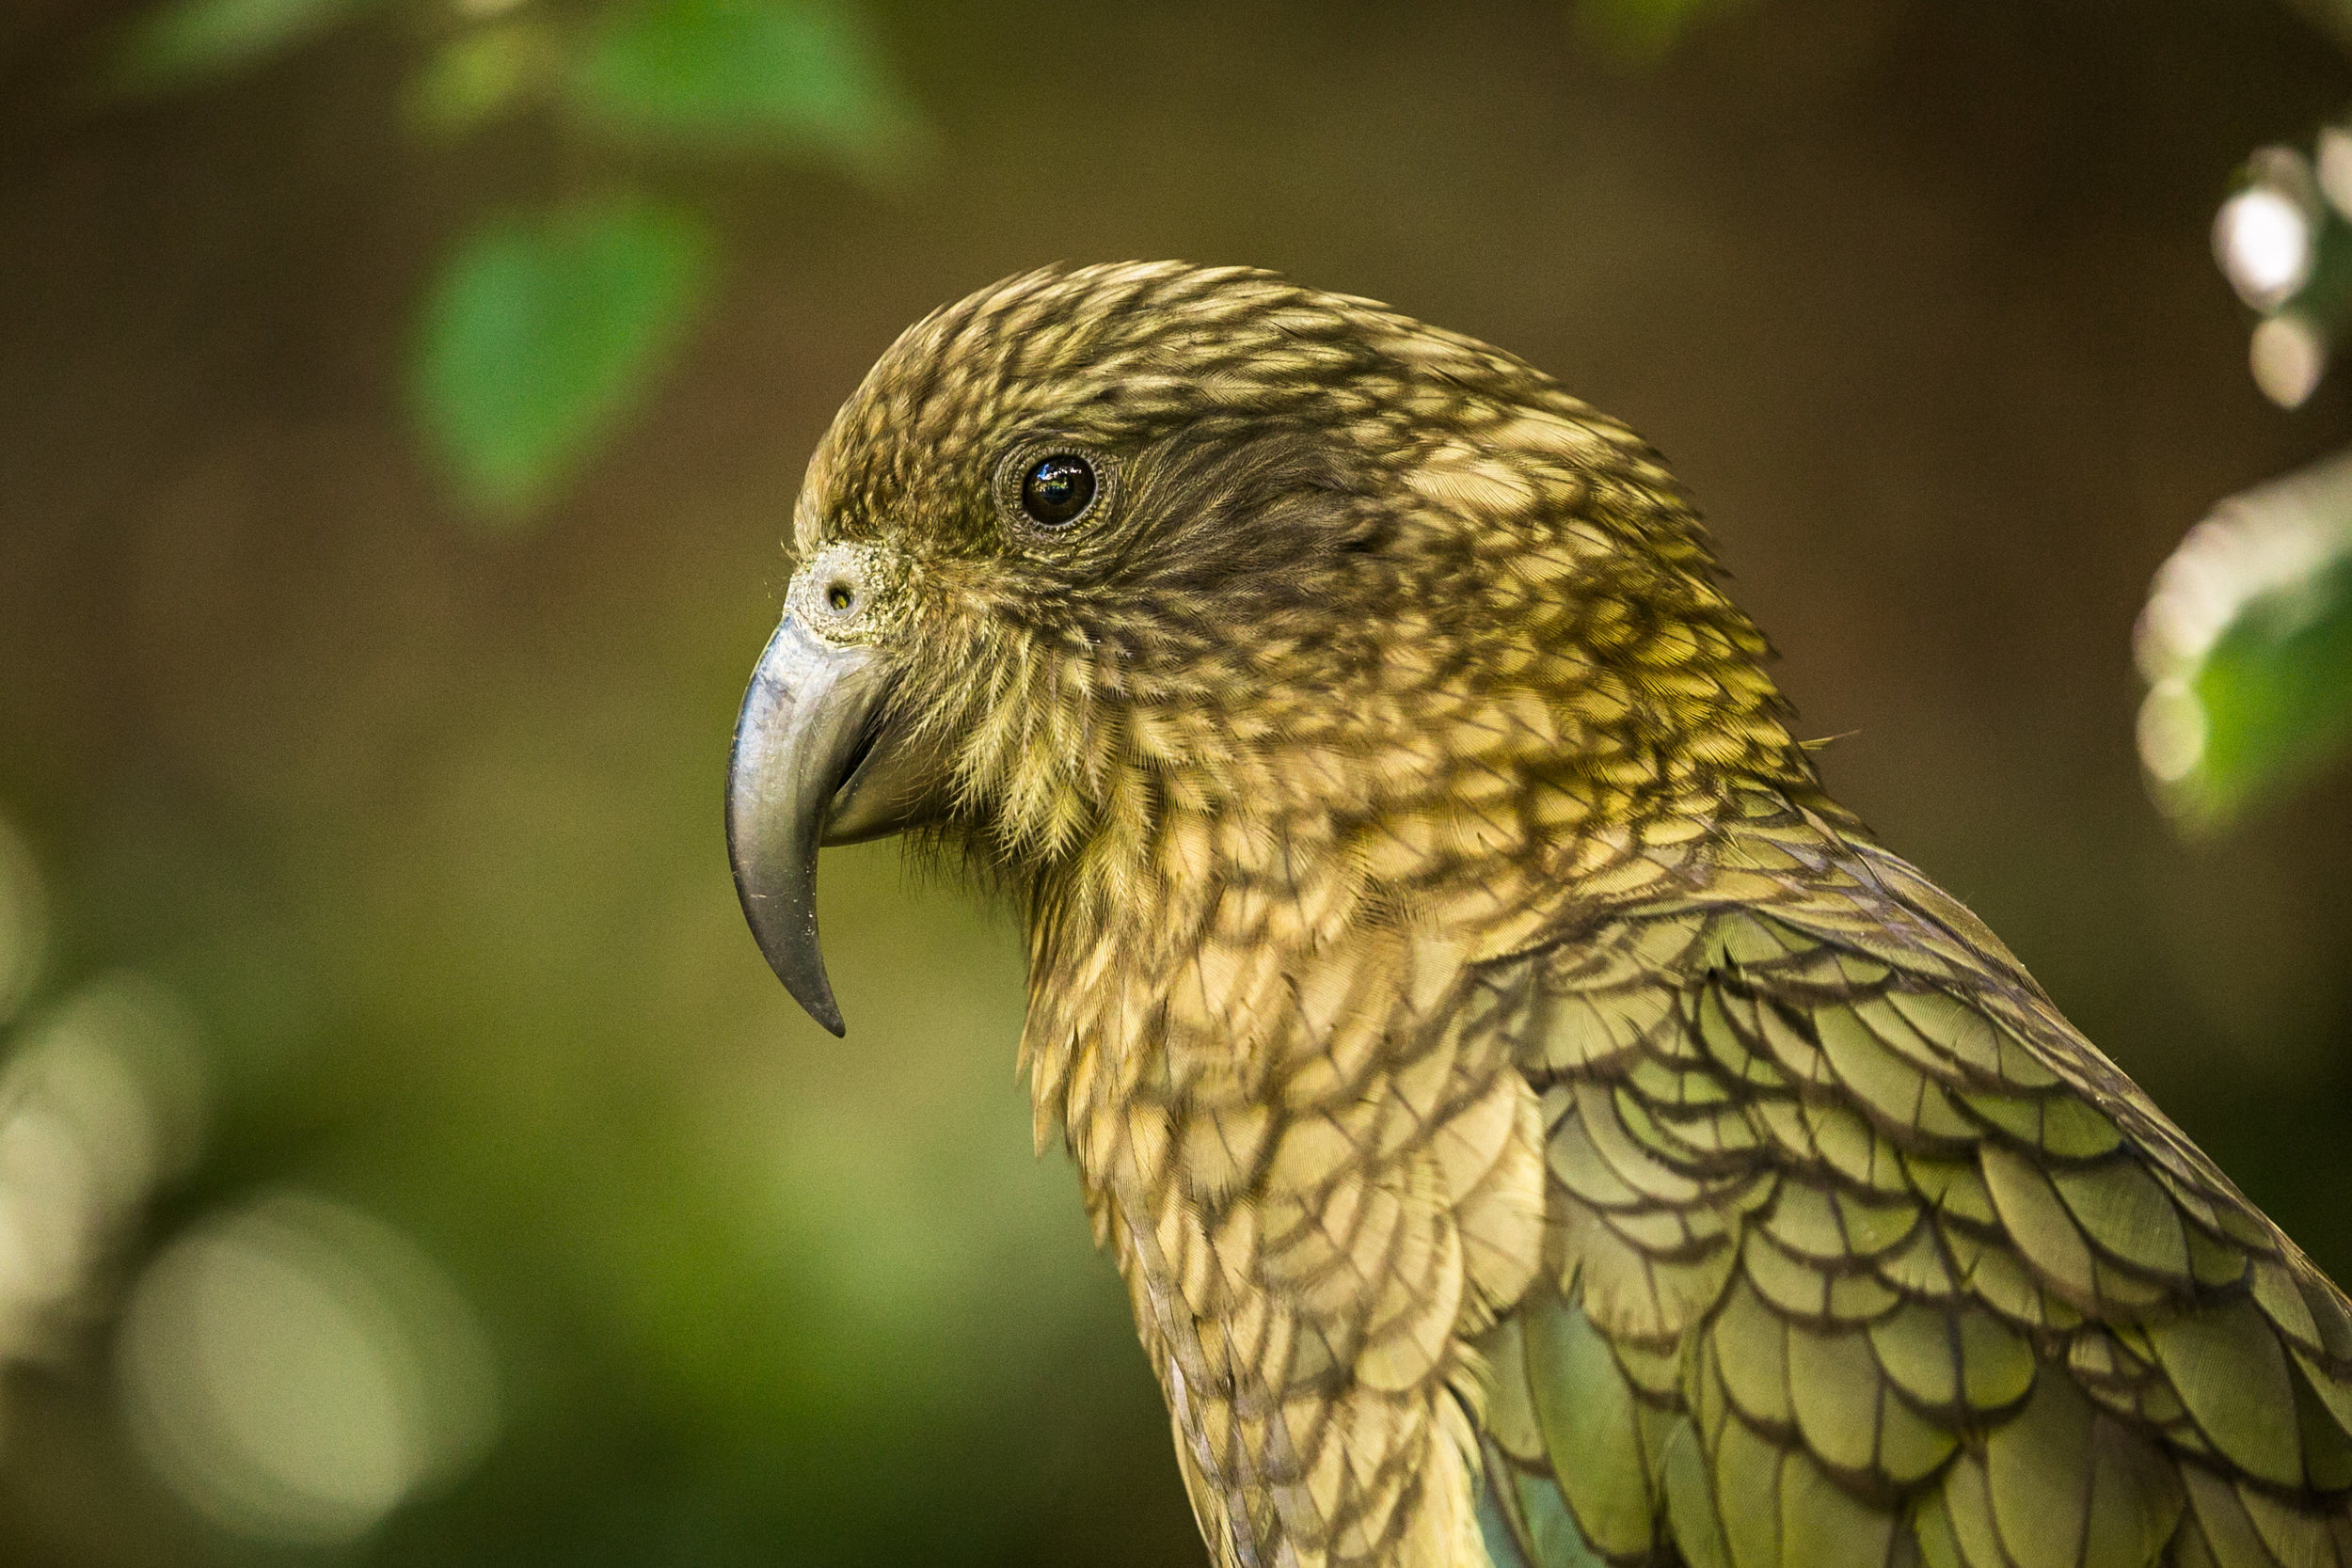 kea (Nestor notabilis) - This is the only alpine parrot in the world, a very intelligent and curious bird species. Their numbers dropped from 150,000 to 5,000 in the 20th century when the New Zealand government used to pay bounties for hunters to kill kea, due to concerns that the birds kill sheep. Now, since 1986, they have been strictly protected under New Zealand's Wildlife Act.